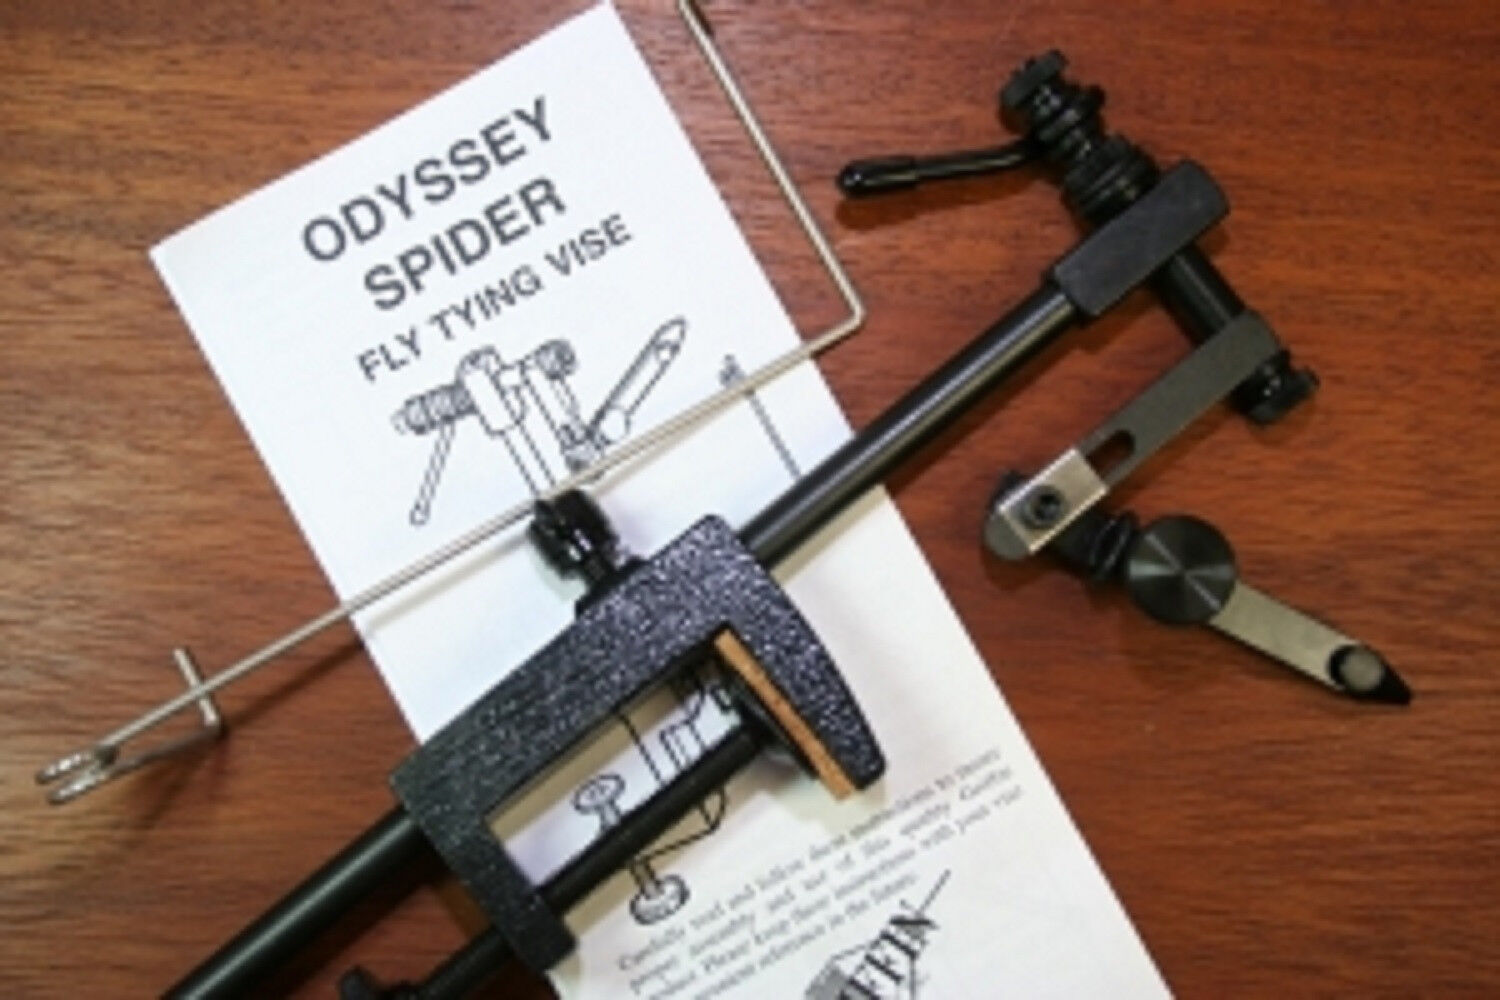 GRIFFIN ODYSSEY SPIDER VISE - with discount offer on fly tying tools